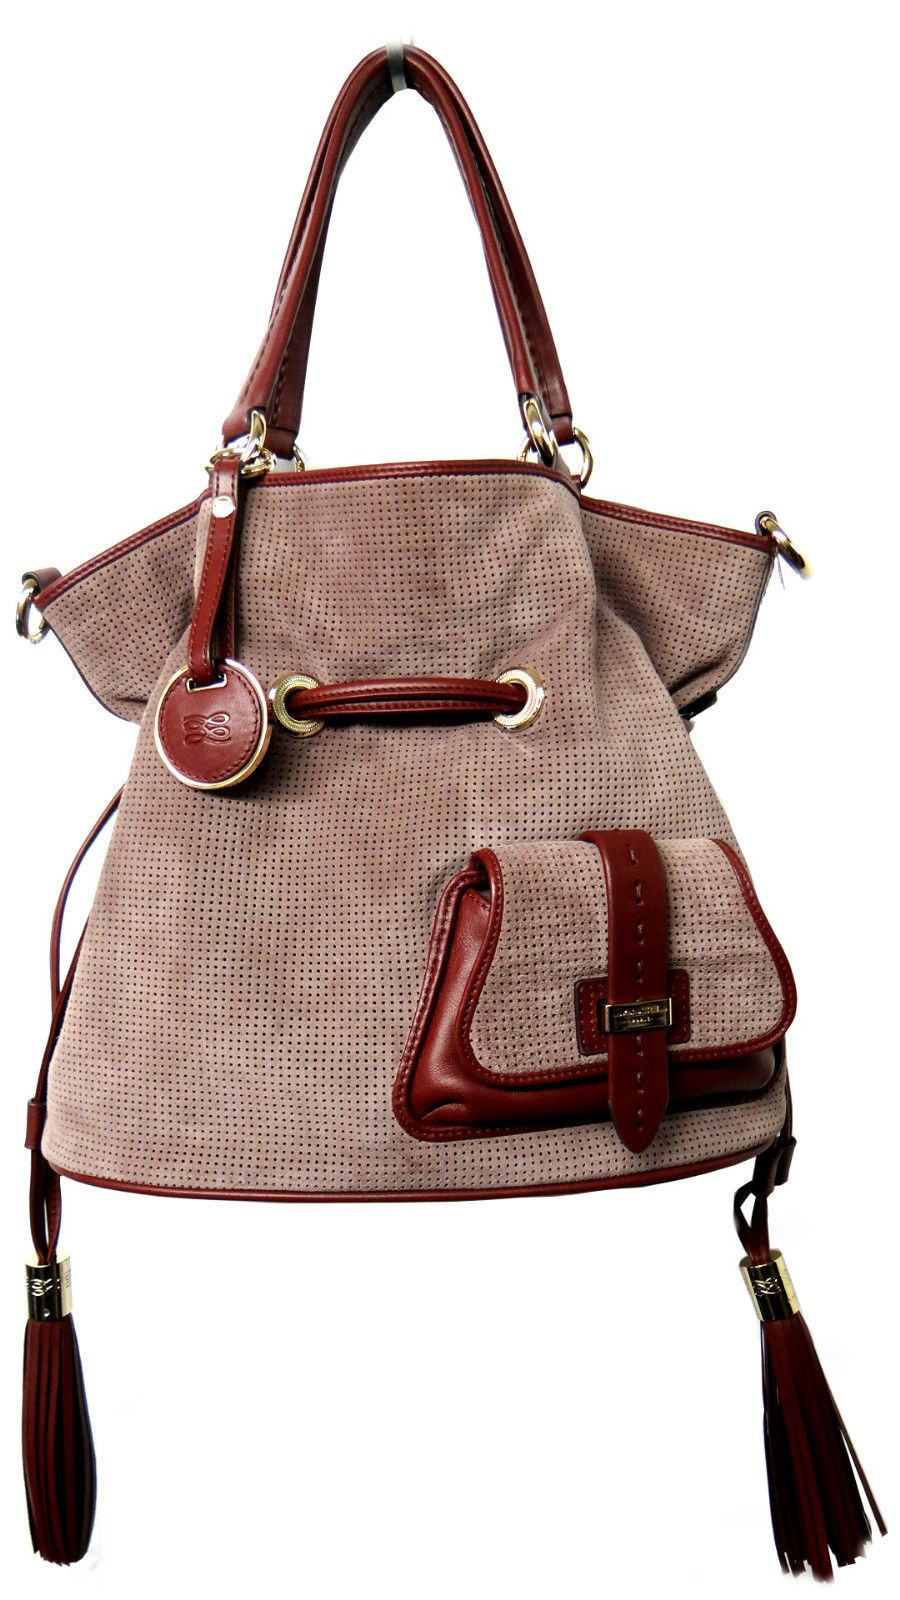 lancel flirt bag price Lancel: bucket bags - red / burgundy price: £50025 delivery: free at monshowroom lancel over-the-shoulder bags - purple / lilac add to wishlist in high demand lancel: over-the-shoulder bags - purple / lilac price: £19575 delivery: free at monshowroom lancel hand bags - brown / bronze add to wishlist.